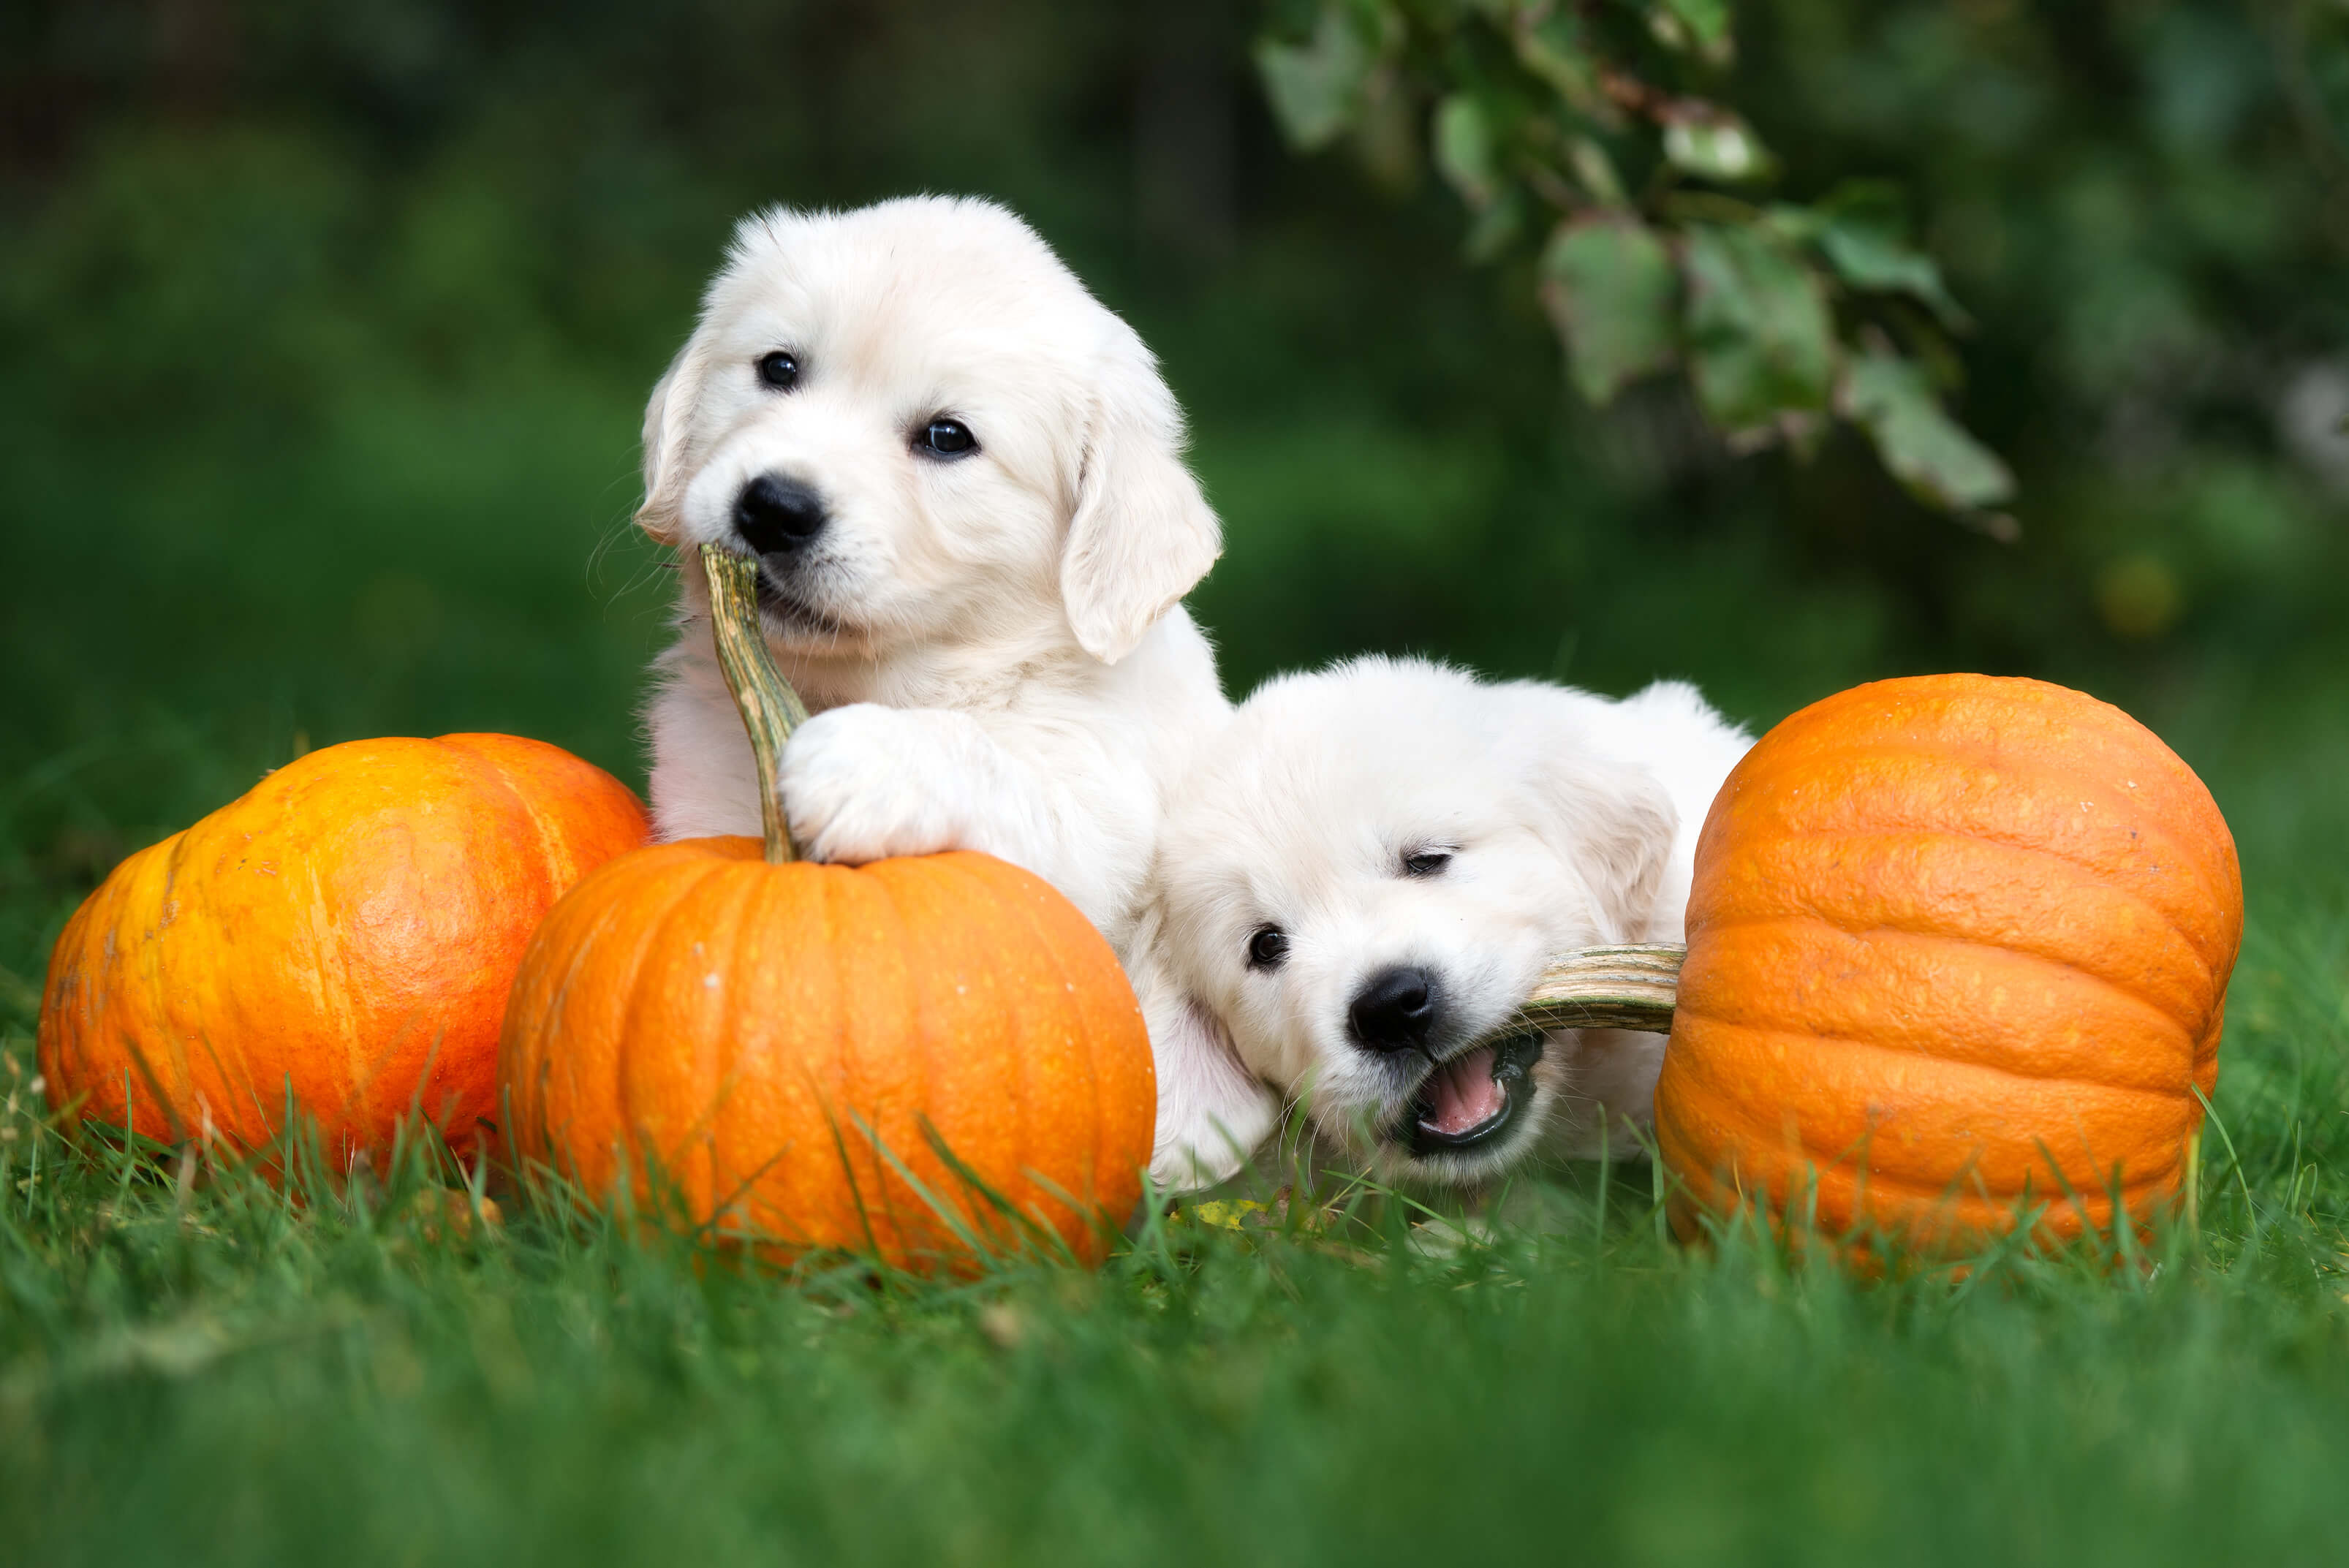 will pumpkin help a dog poop